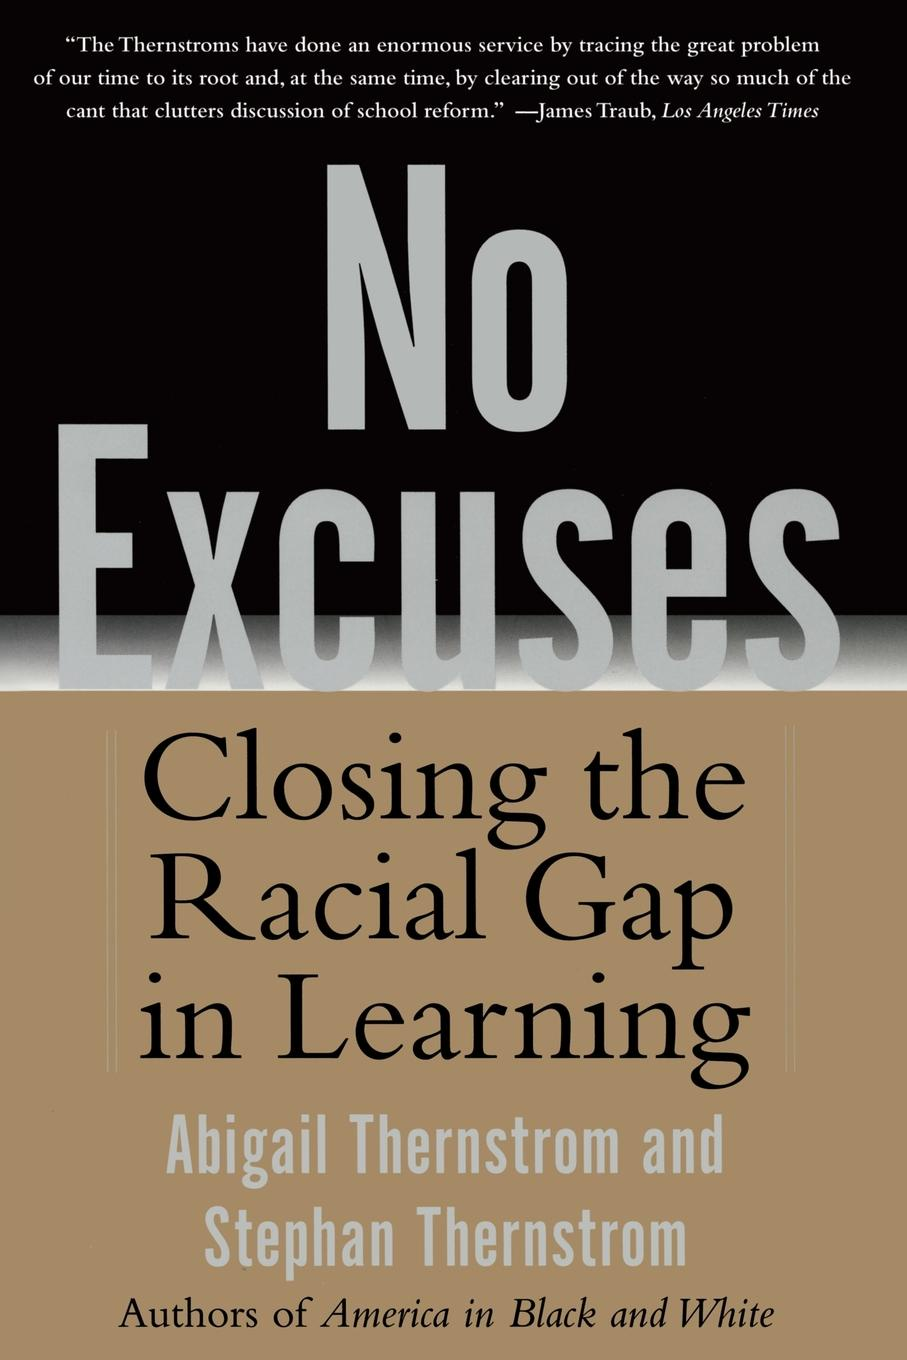 Abigail Thernstrom, Stephan Thernstrom No Excuses. Closing the Racial Gap in Learning